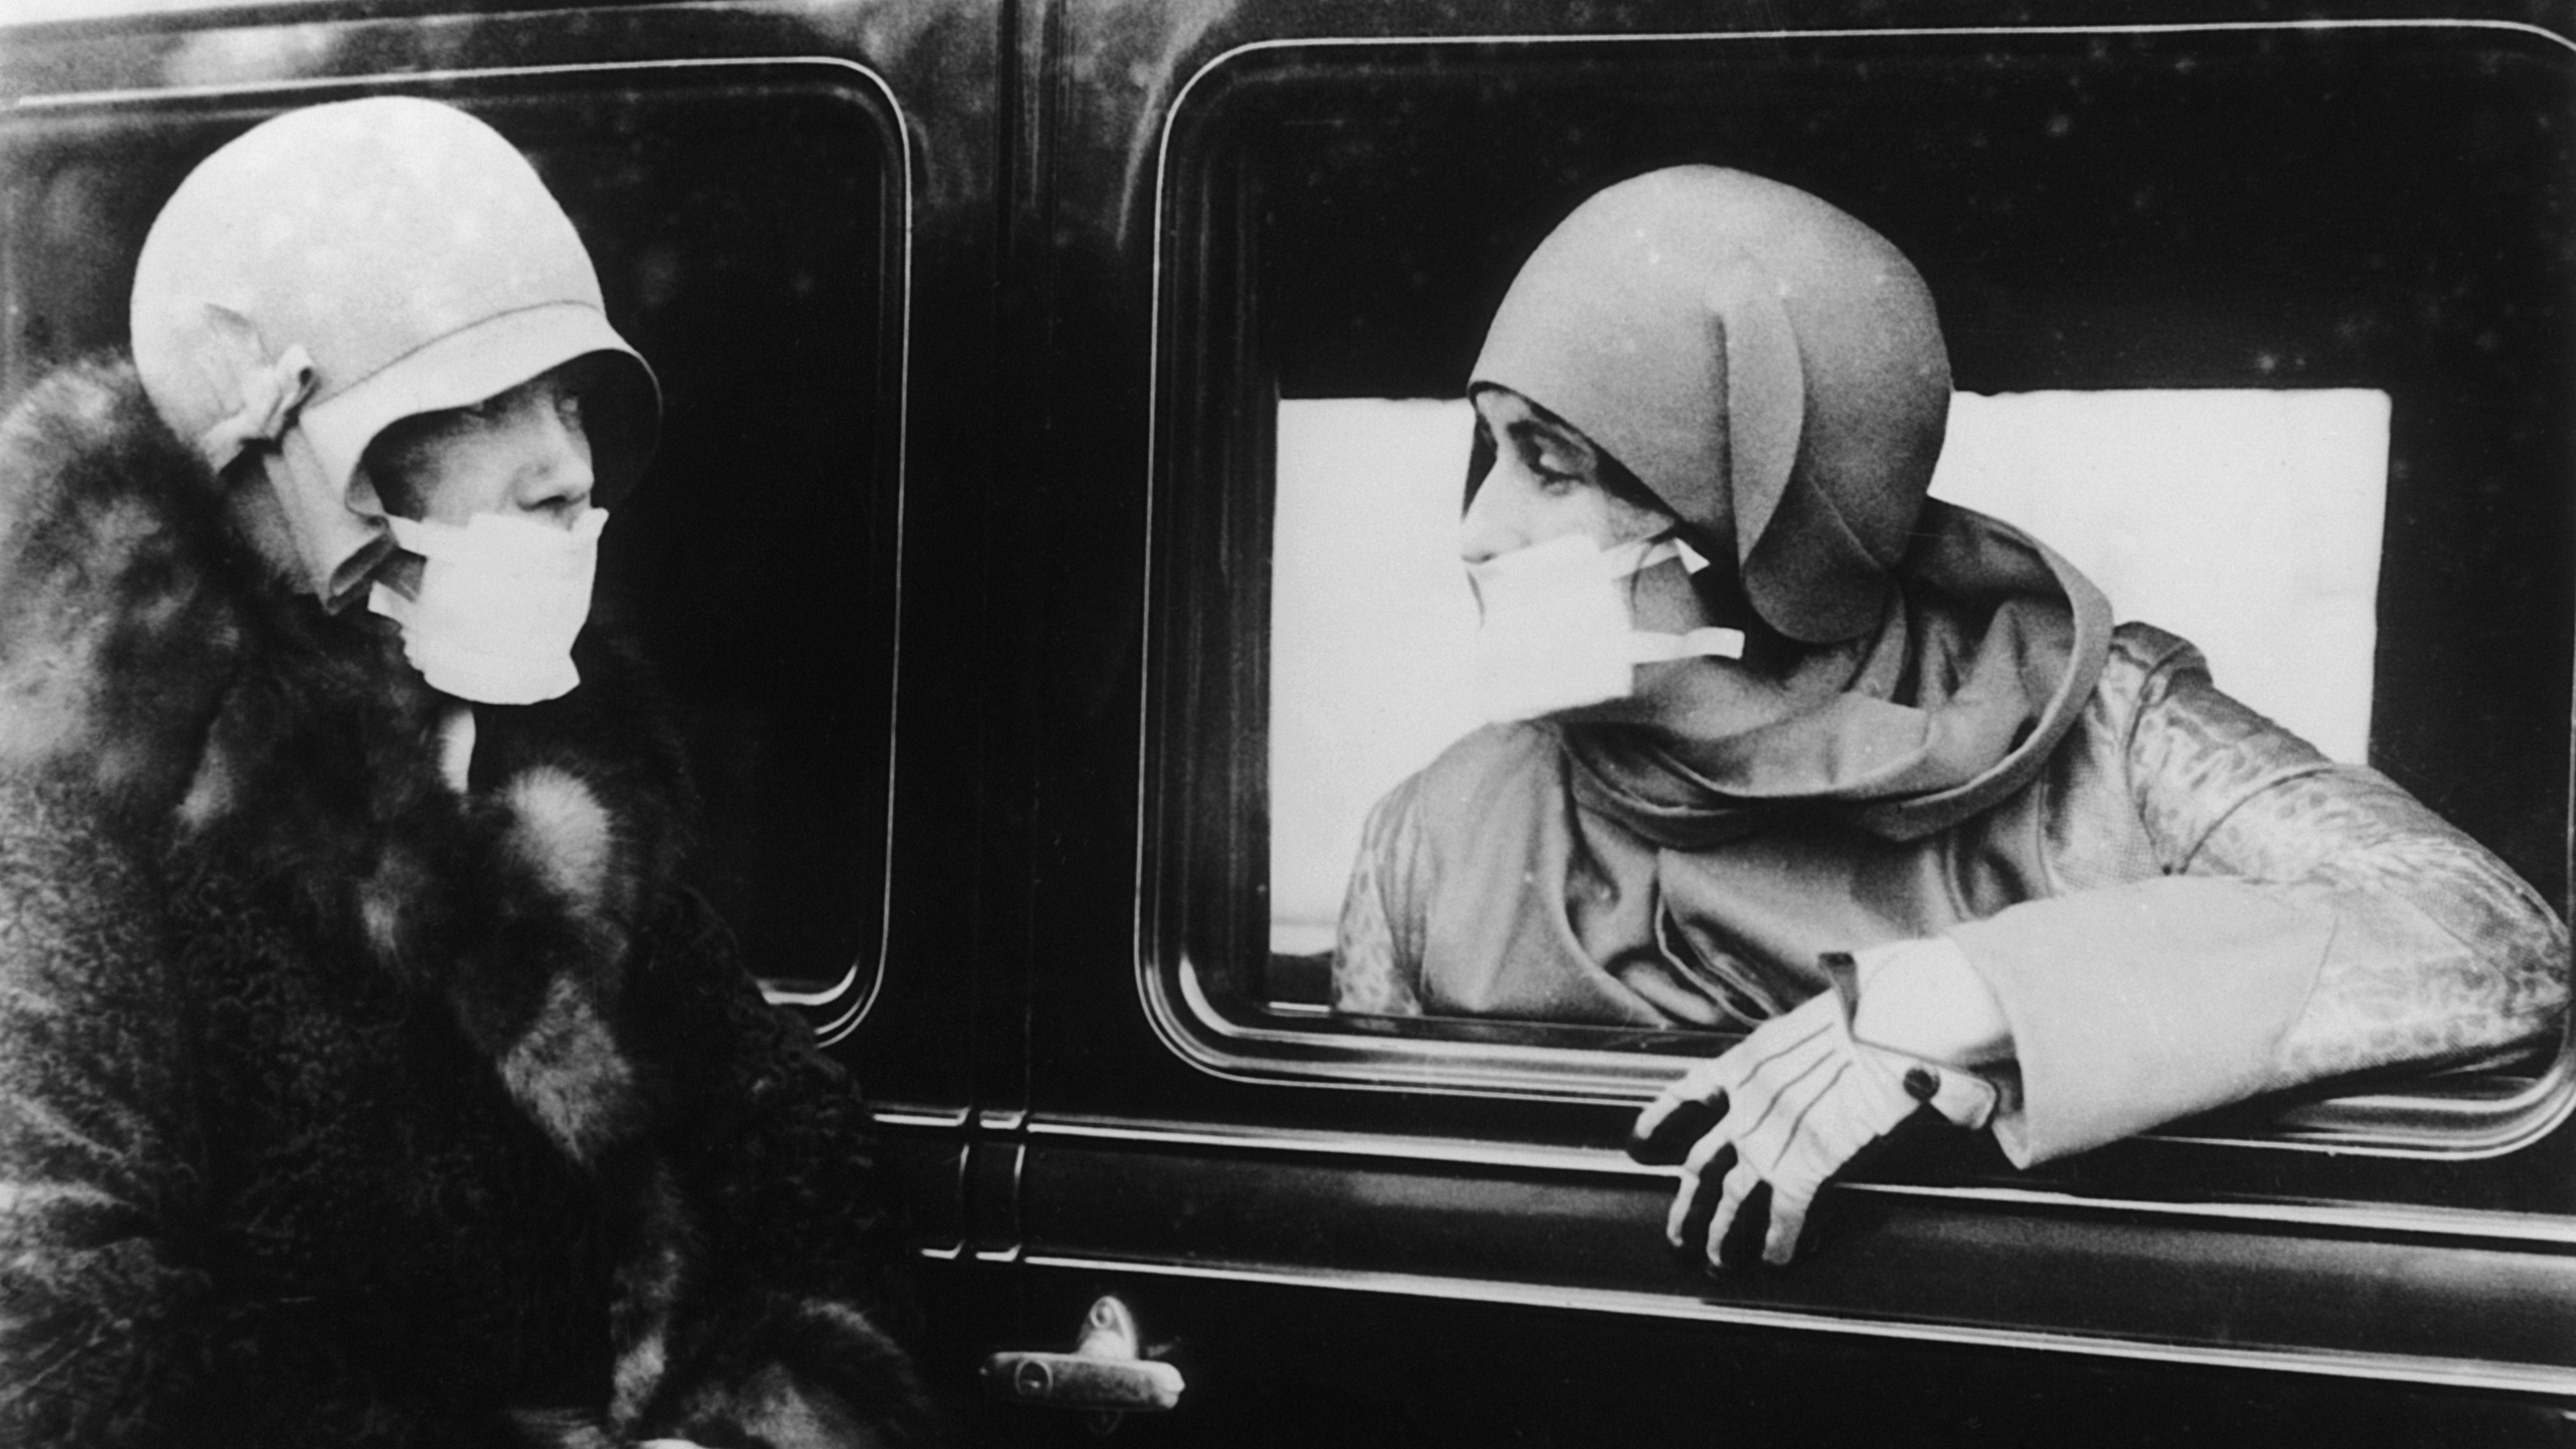 Life after the 1918 flu has lessons for our post-pandemic world